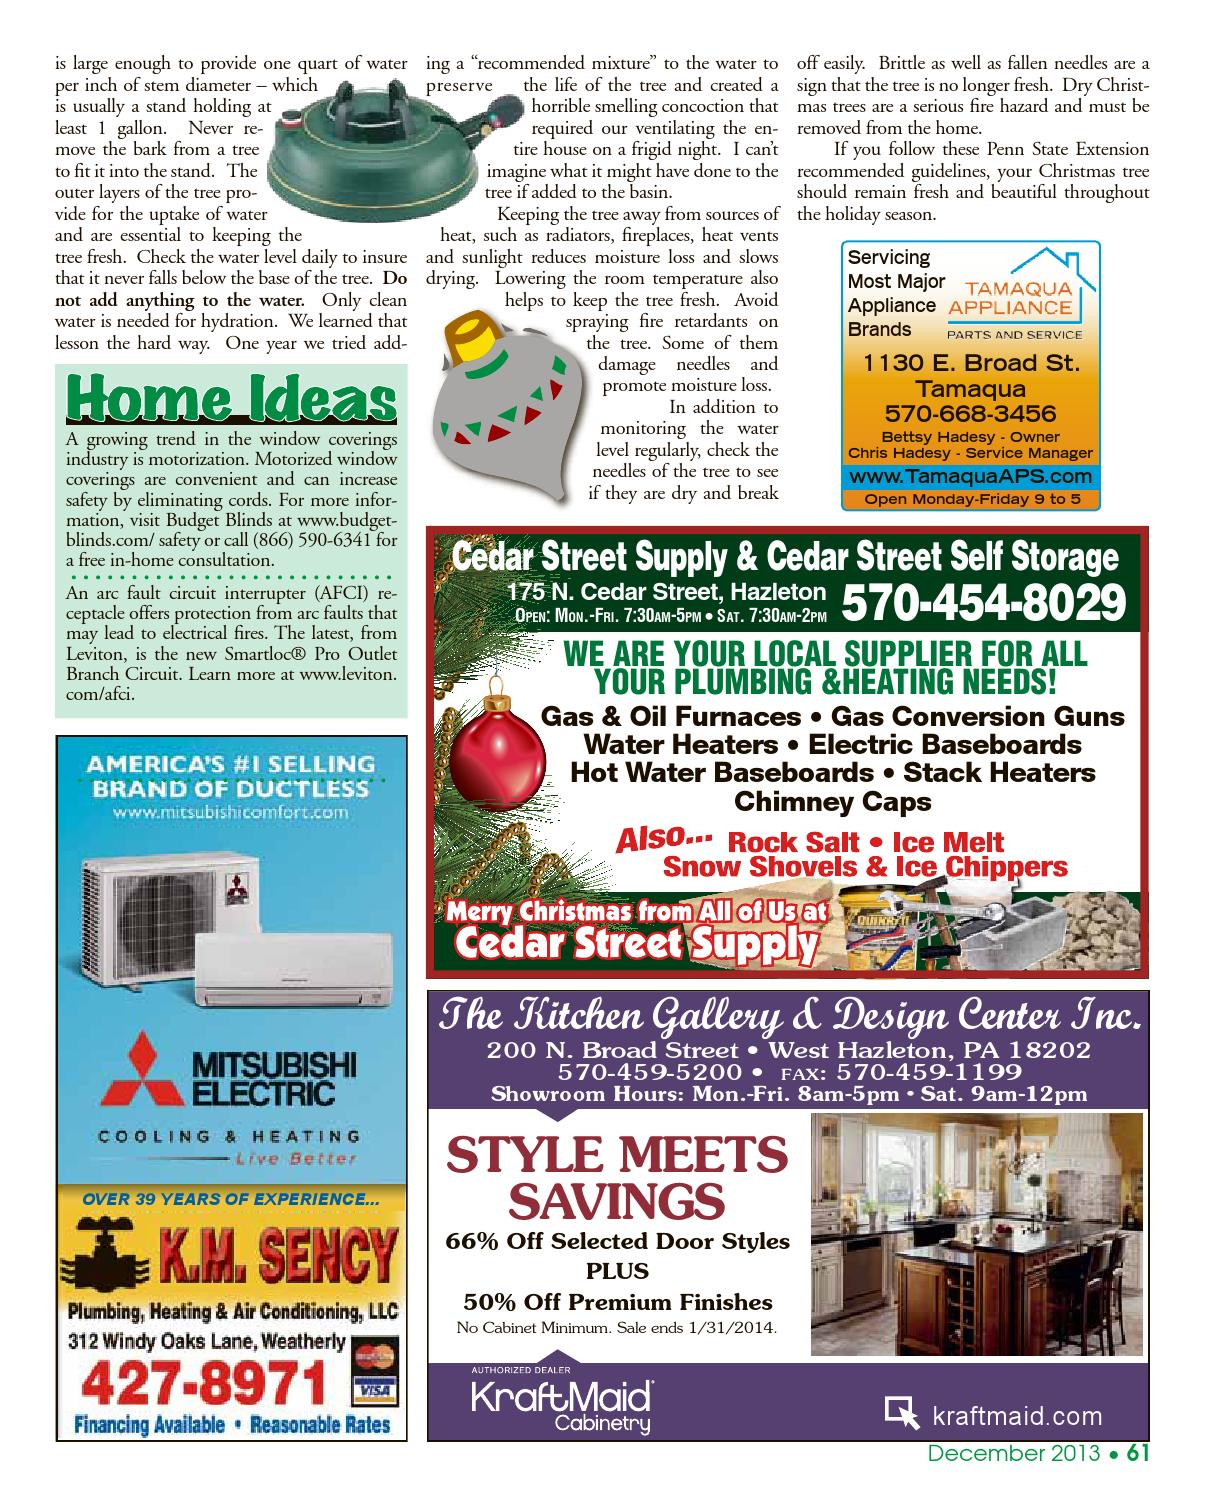 Kitchen gallery design center north broad street west hazleton pa - December 2013 Panorama Community Magazine By Panorama Community Magazine Page 61 Issuu